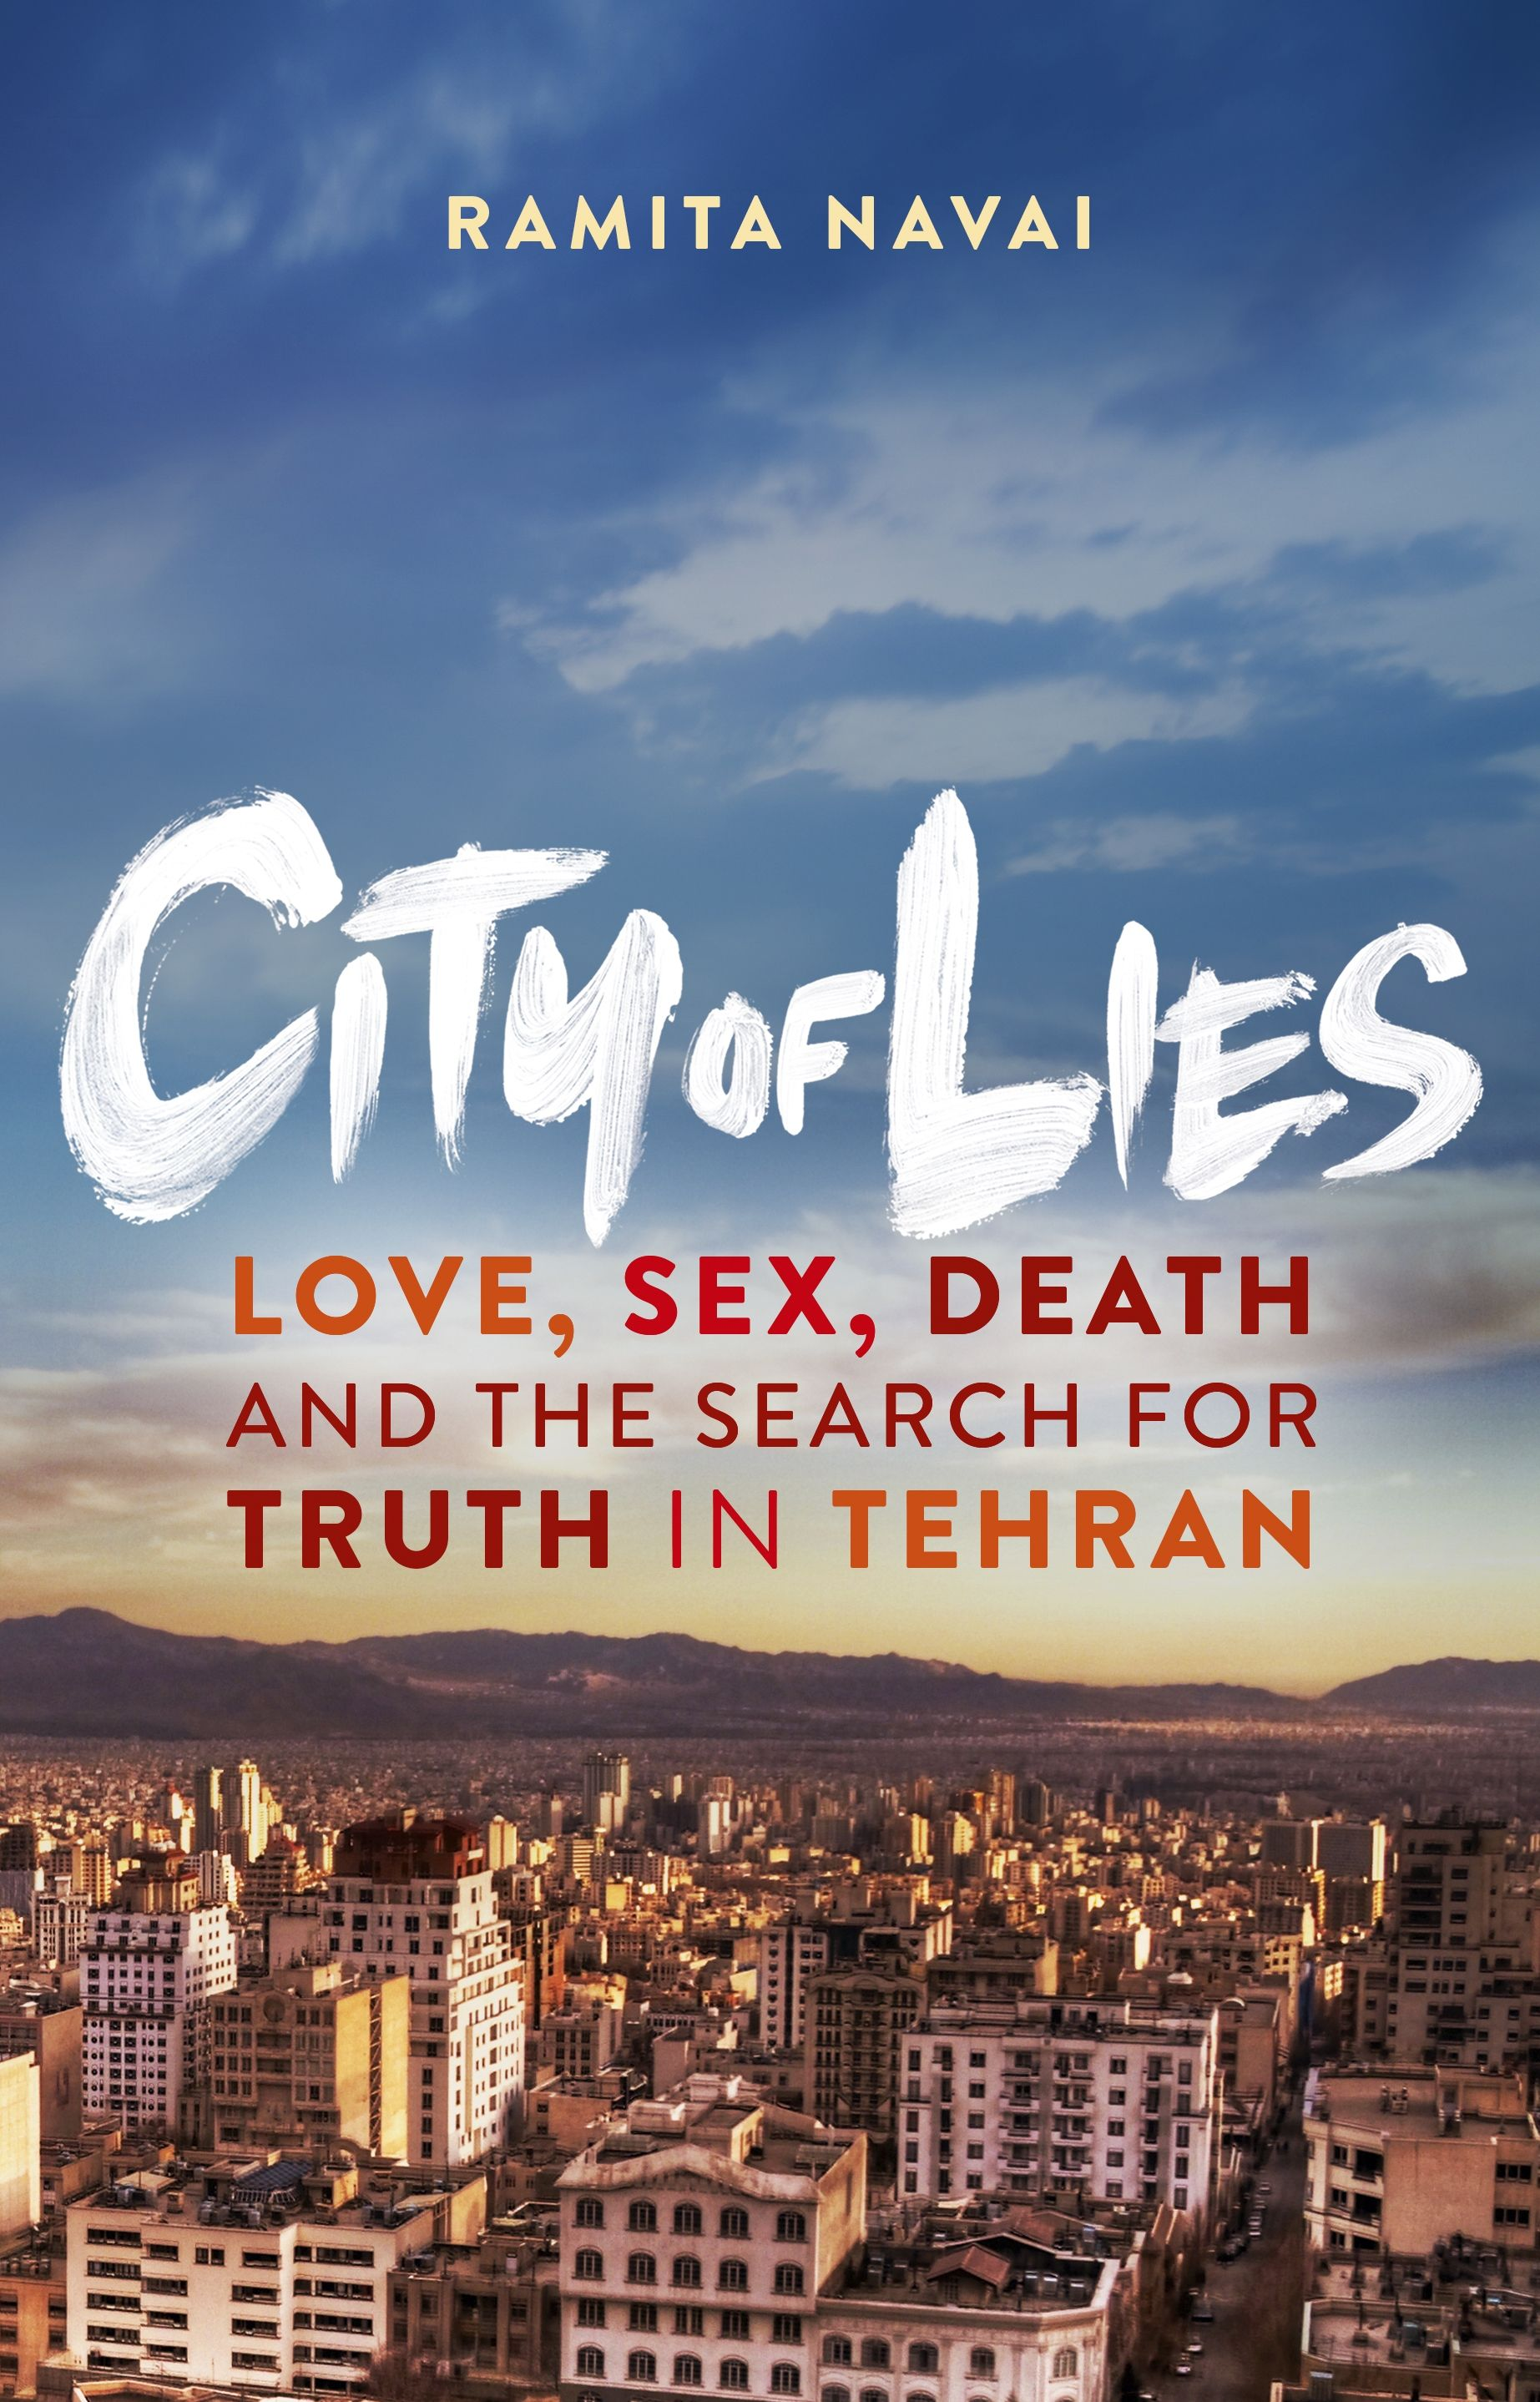 Paddy Power Political Book Awards 'Debut Political Book of the Year Award'-winning City of Lies: Love, Sex, Death and the Search for Truth in Tehran by Ramita Navai (W&N)